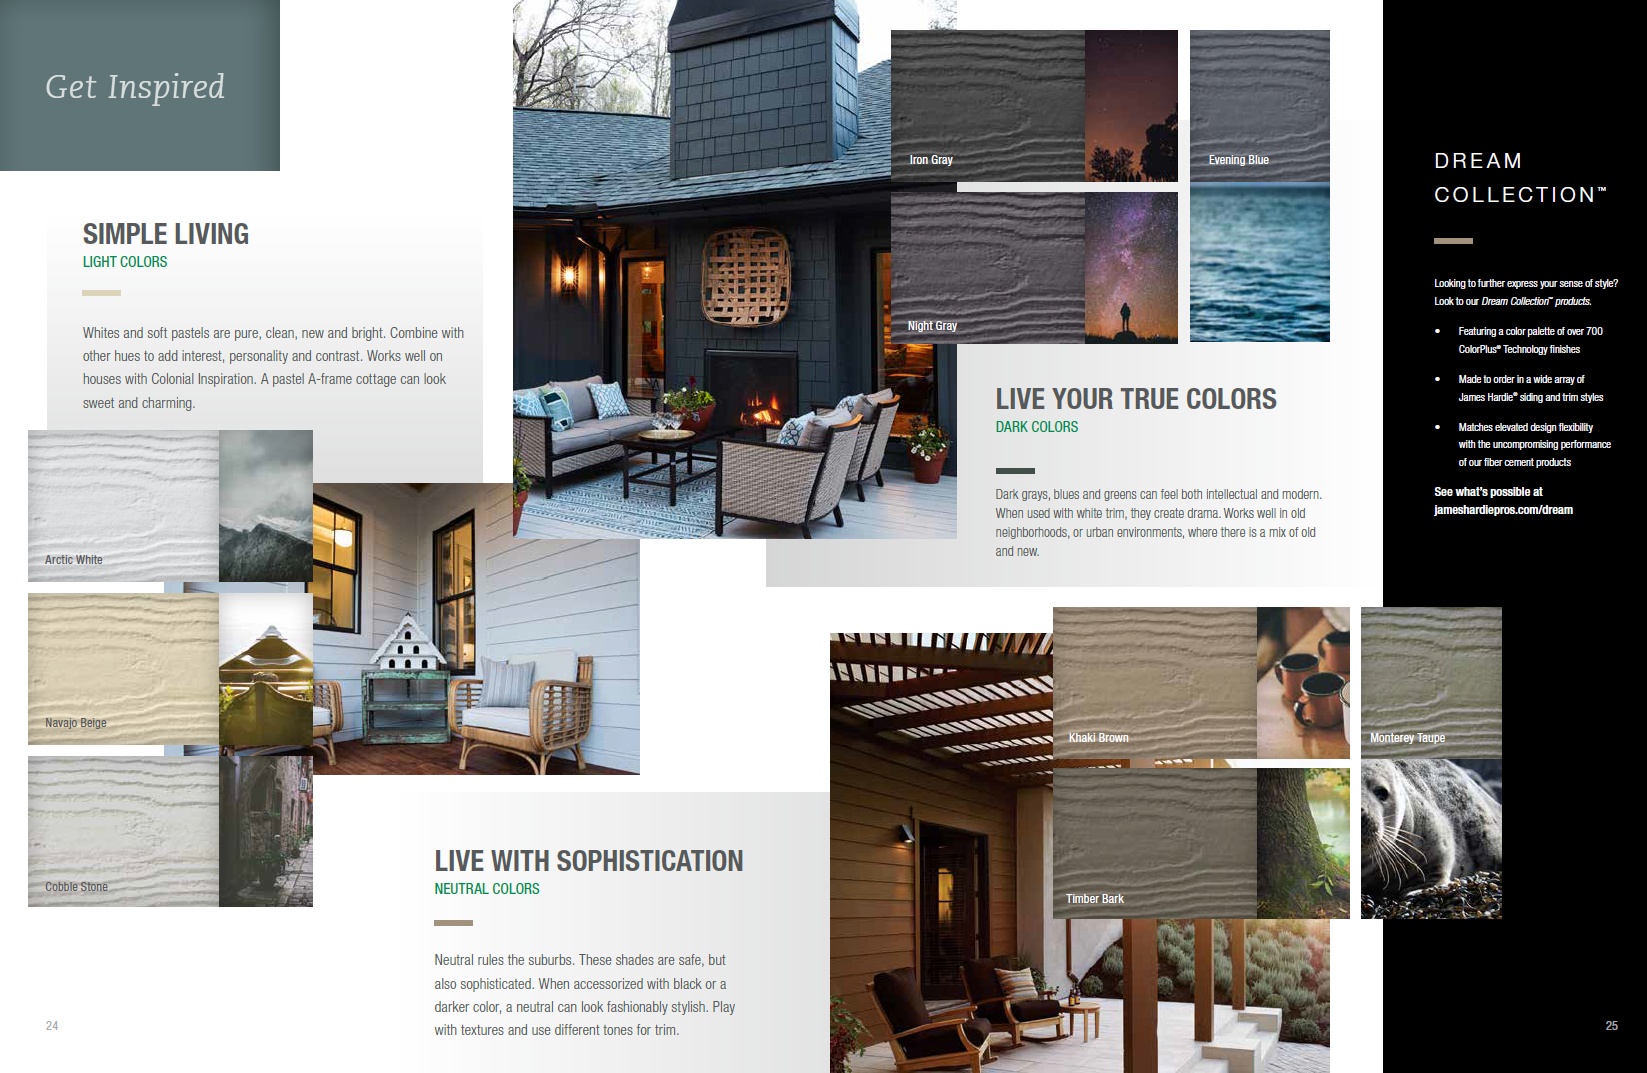 James Hardie Dream Collection